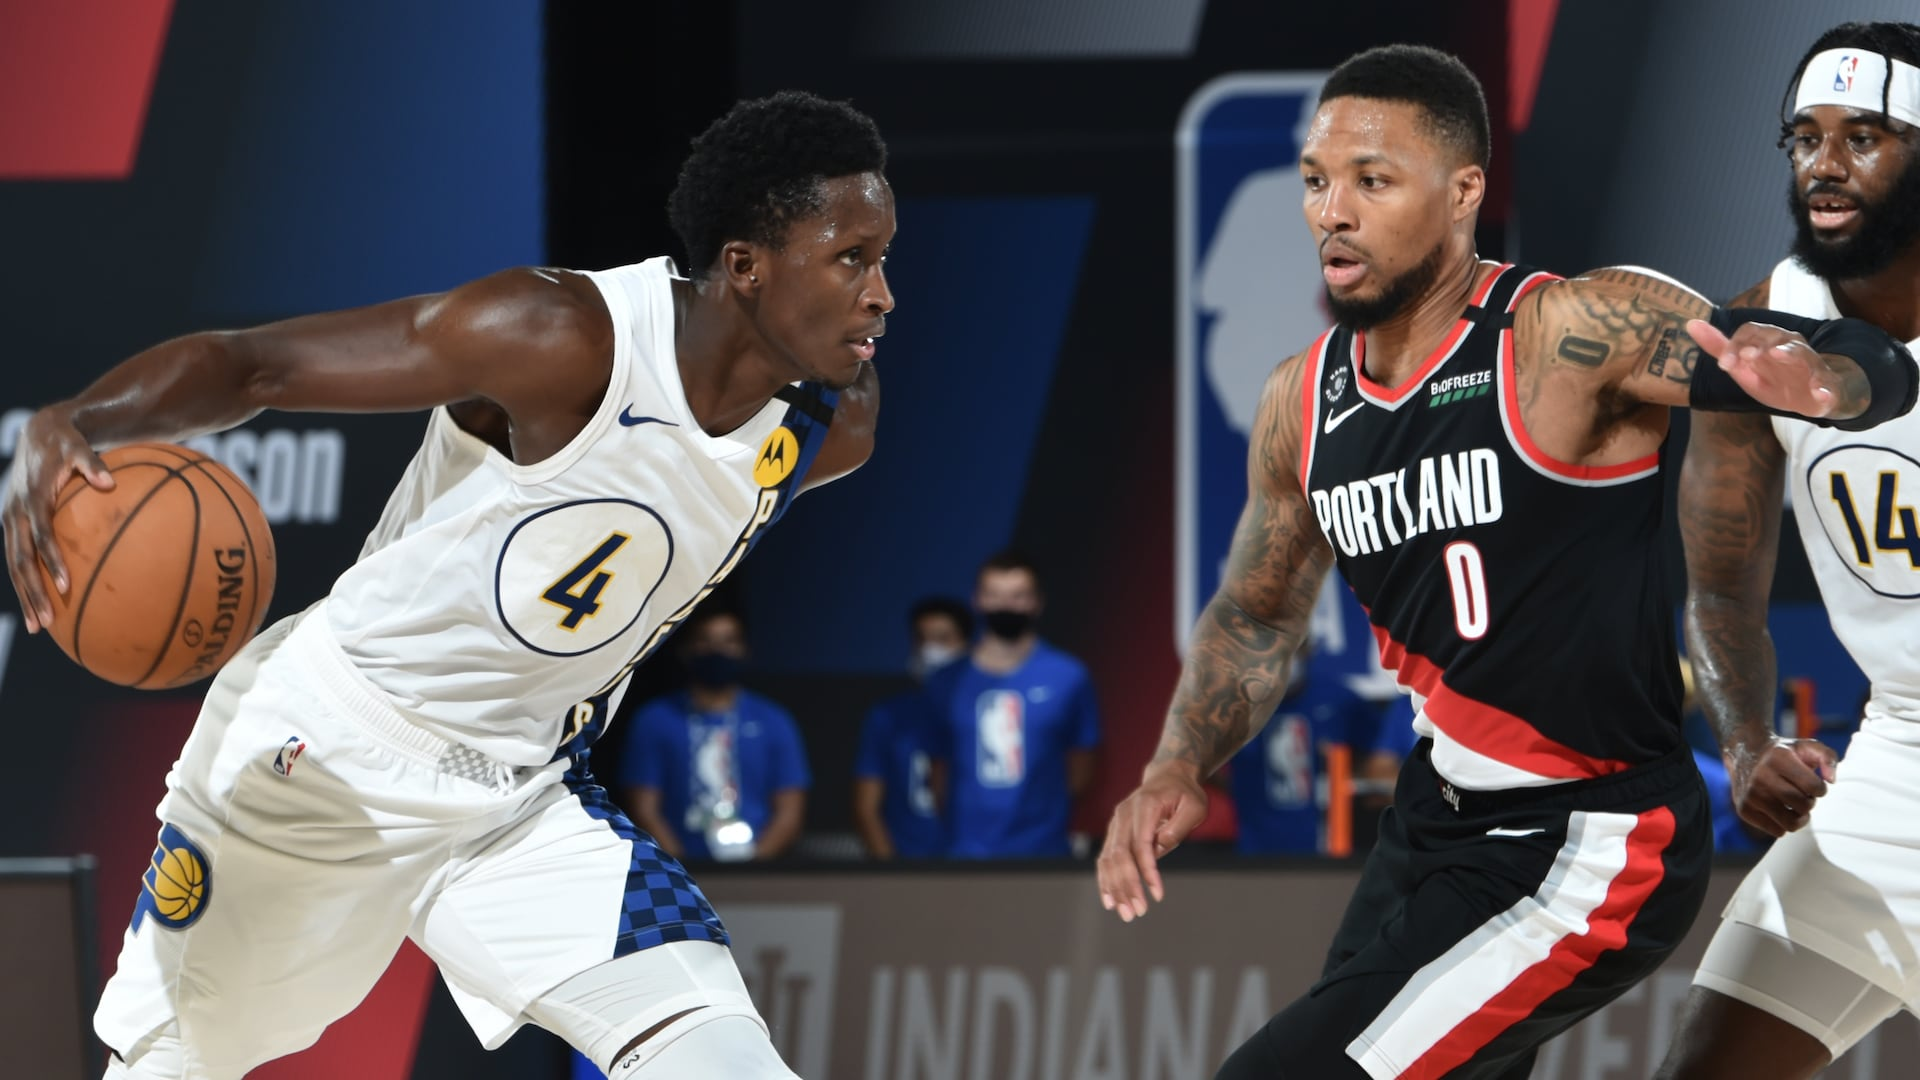 Victor Oladipo starts in Pacers' scrimmage vs. Blazers